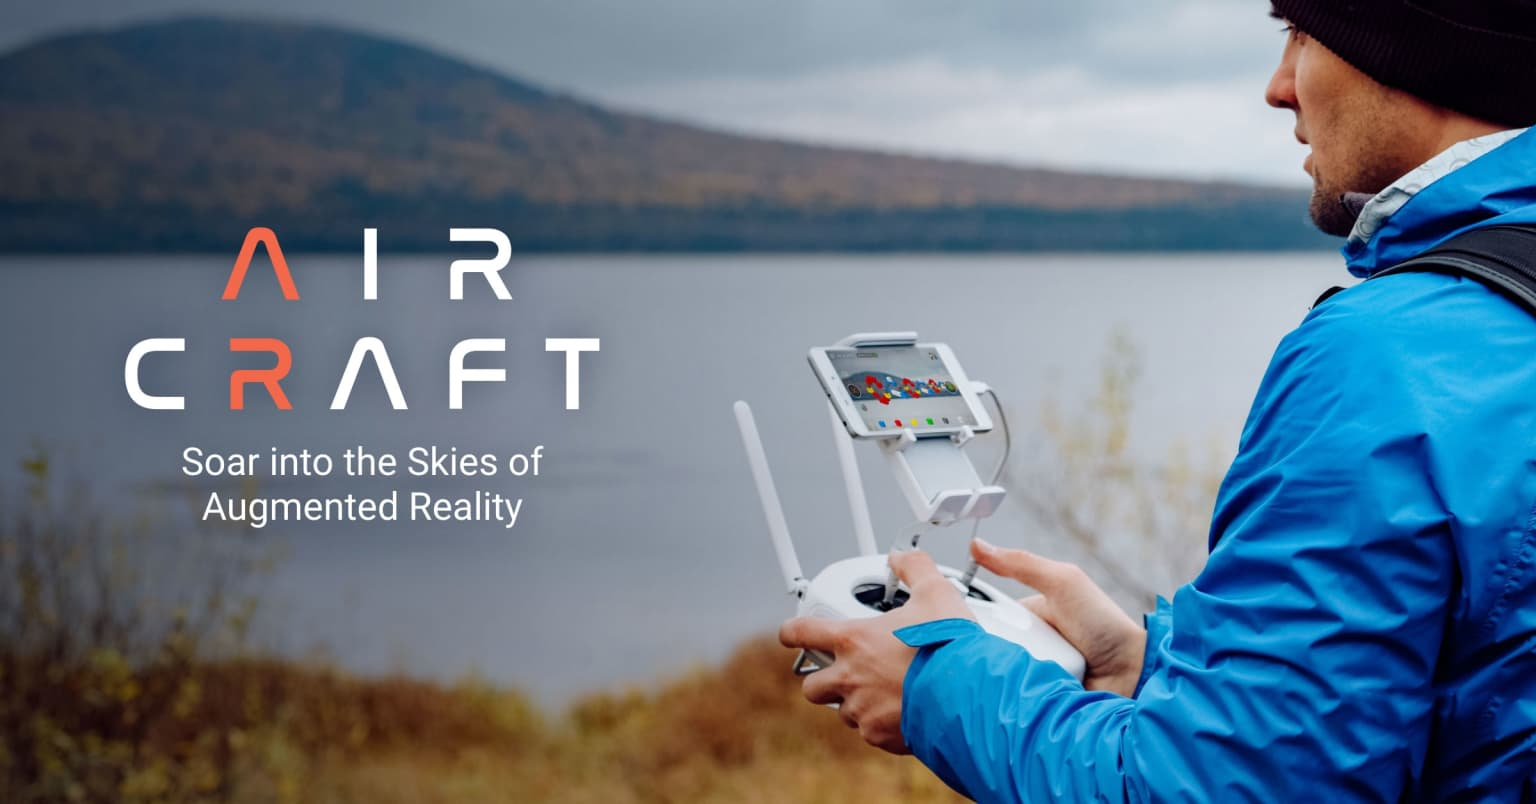 DJI & DRONEBASE WORLD'S FIRST AUGMENTED REALITY EXPERIENCE